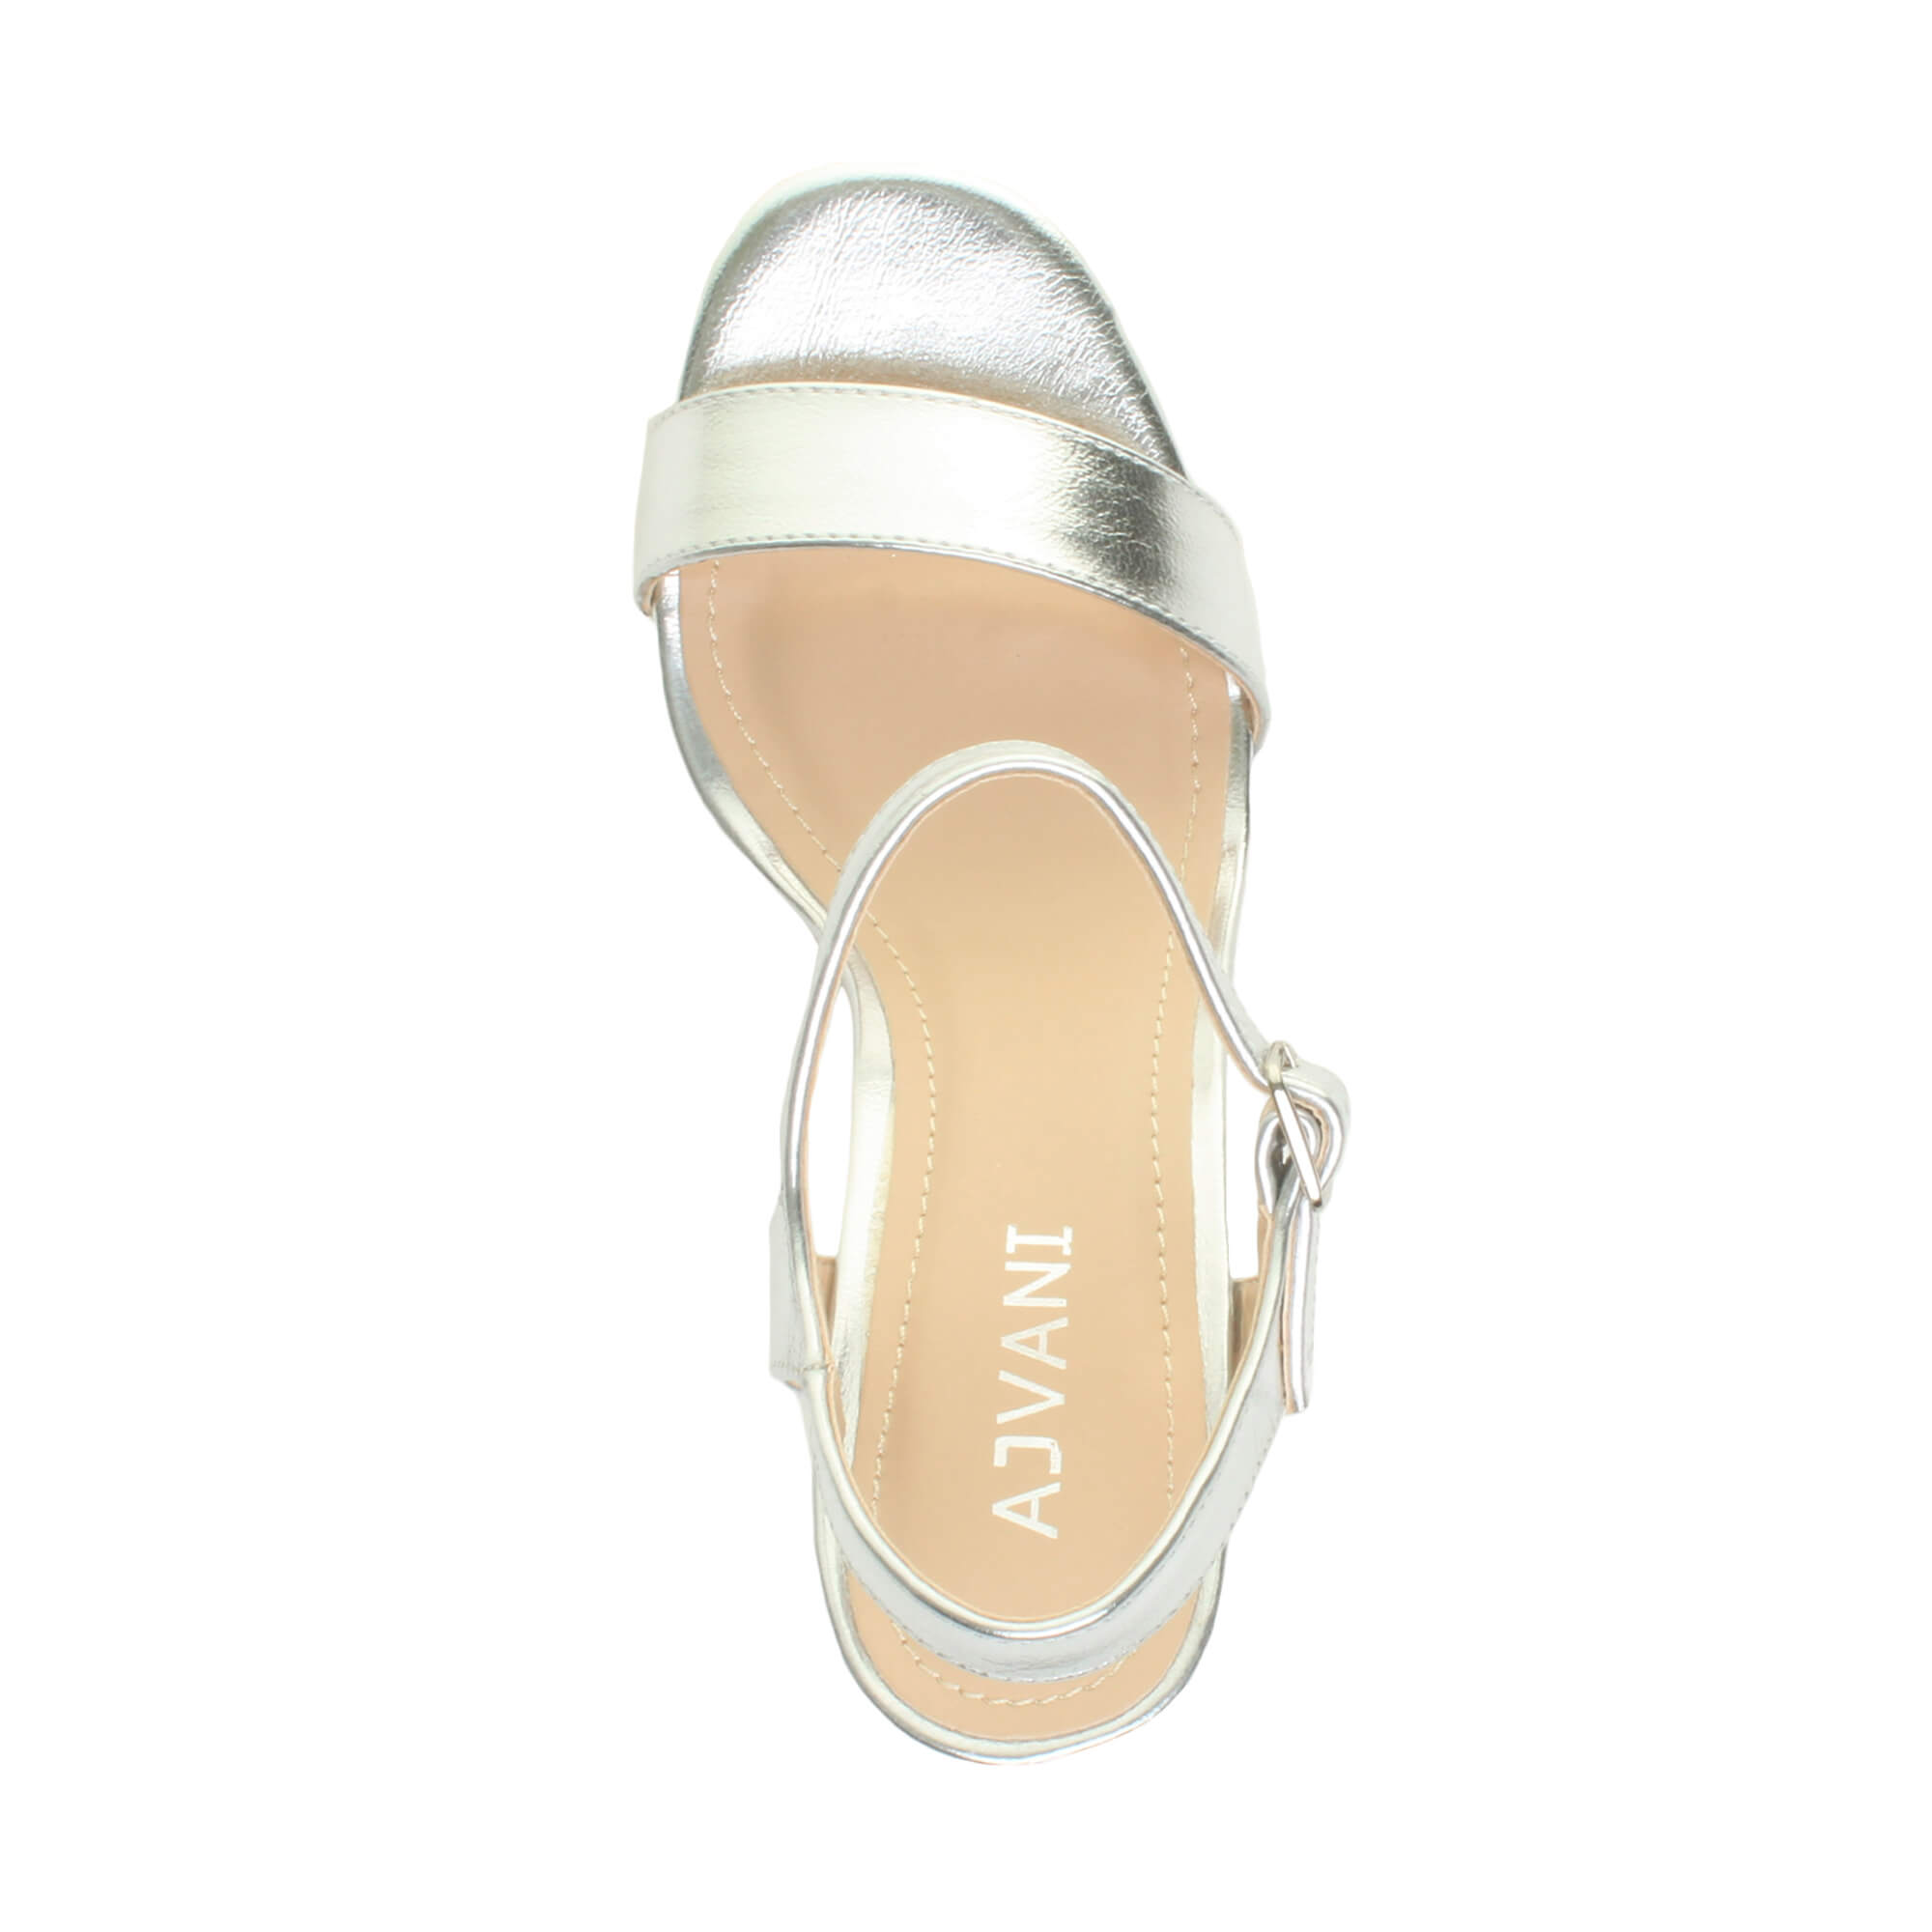 WOMENS-LADIES-HIGH-HEEL-BUCKLE-STRAPPY-BASIC-BARELY-THERE-SANDALS-SHOES-SIZE thumbnail 133